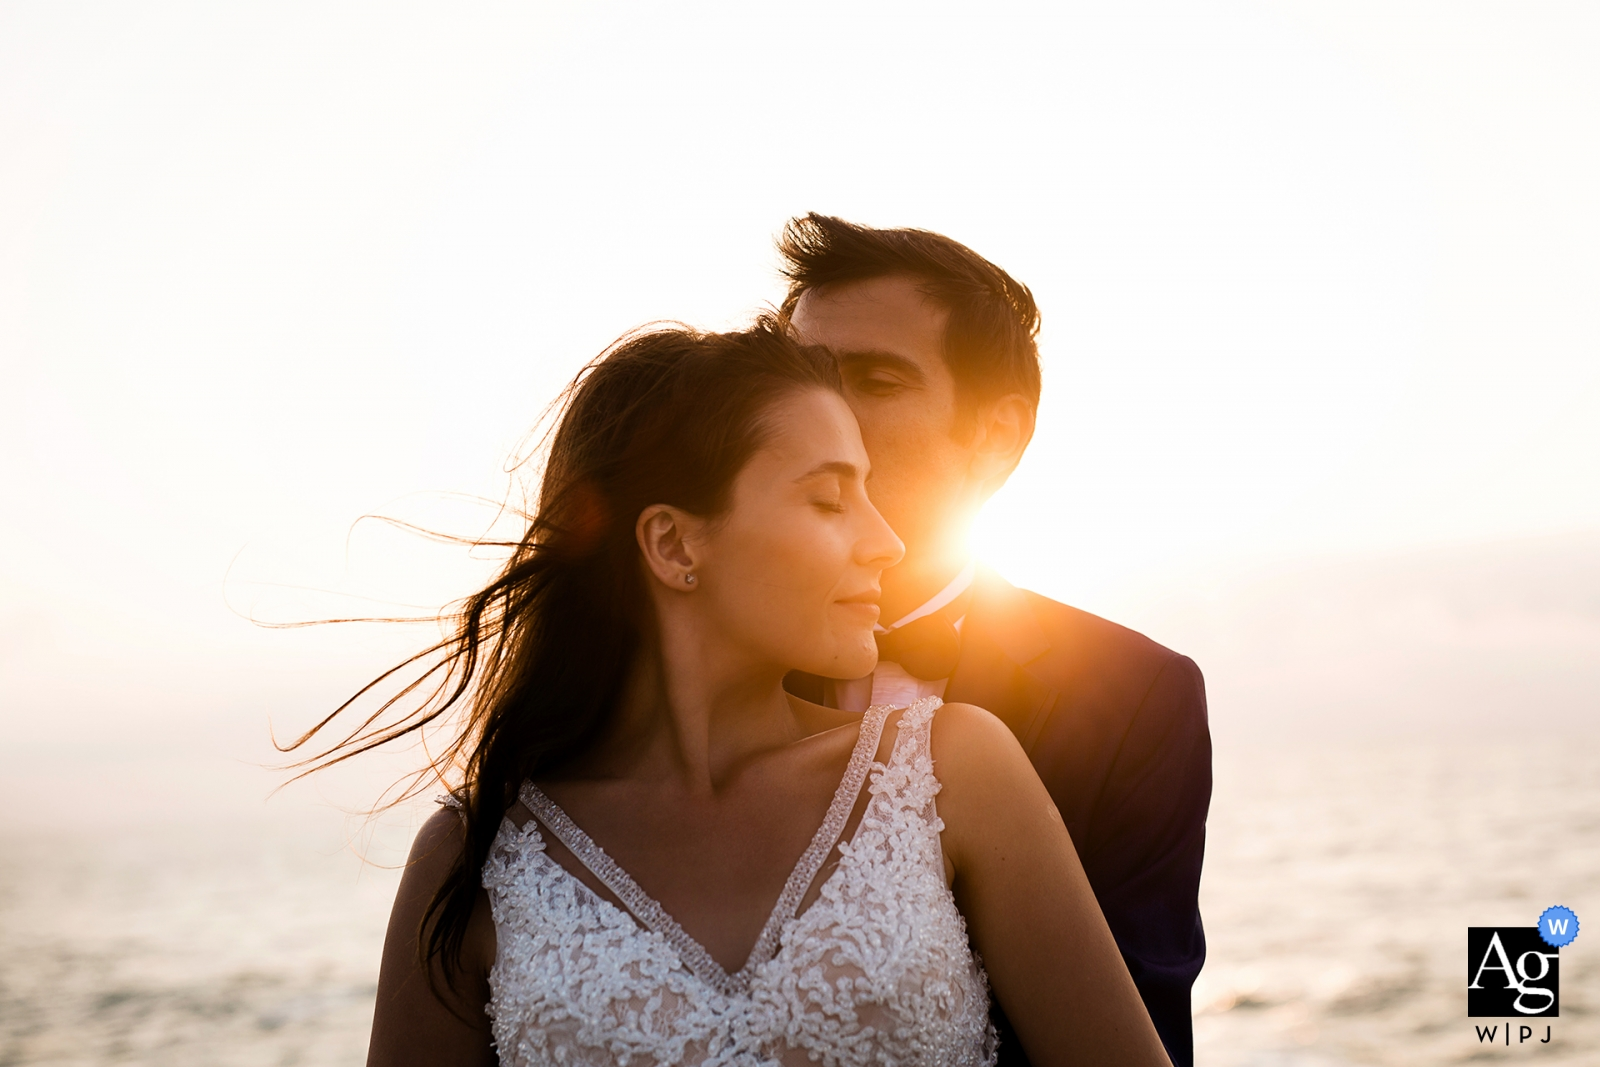 Istanbul lovers in the magical sunset | Bride and groom creative light portrait